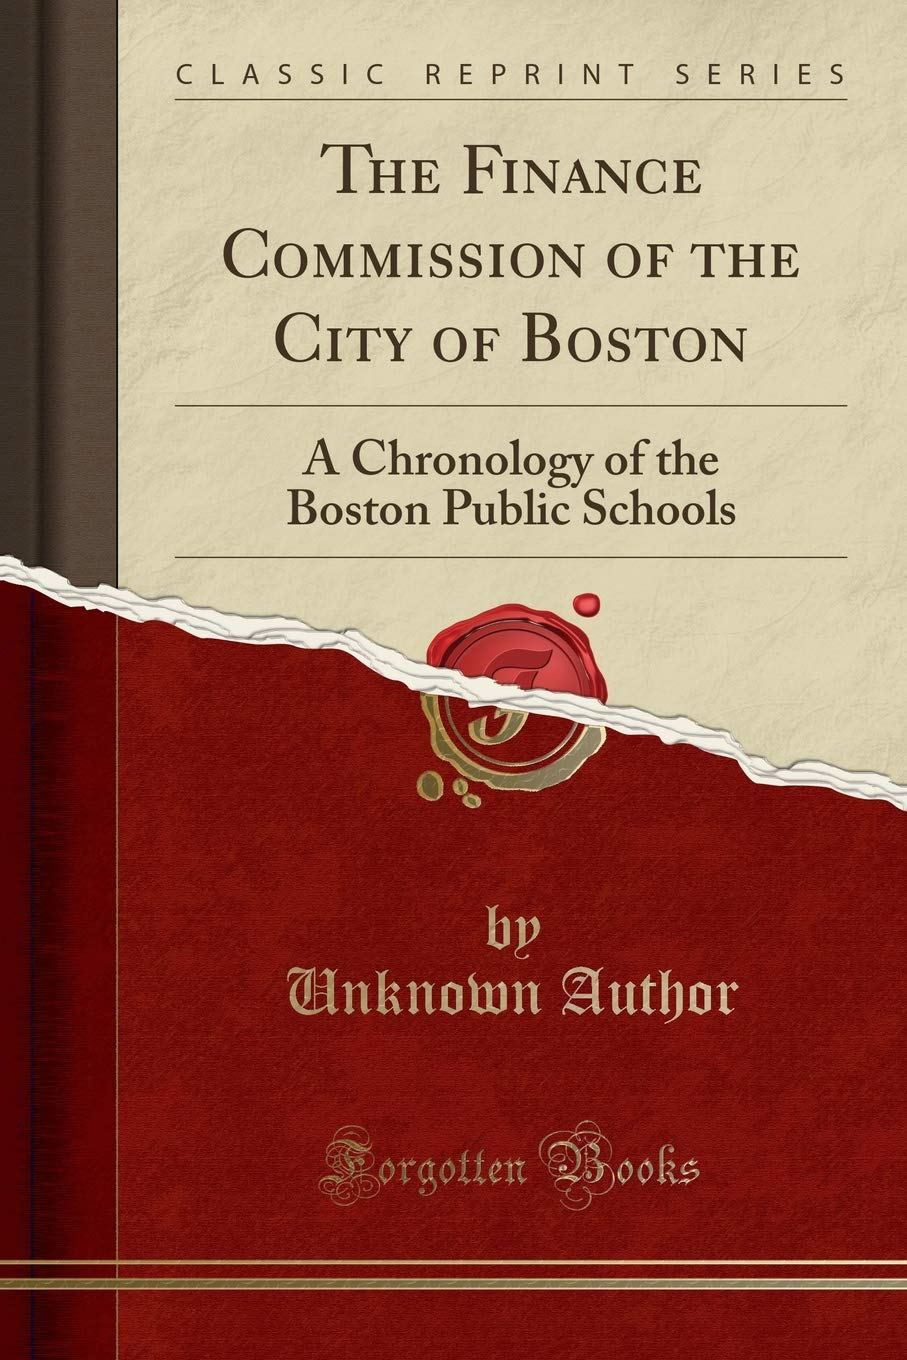 The Finance Commission of the City of Boston: A Chronology of the Boston Public Schools (Classic Reprint) PDF